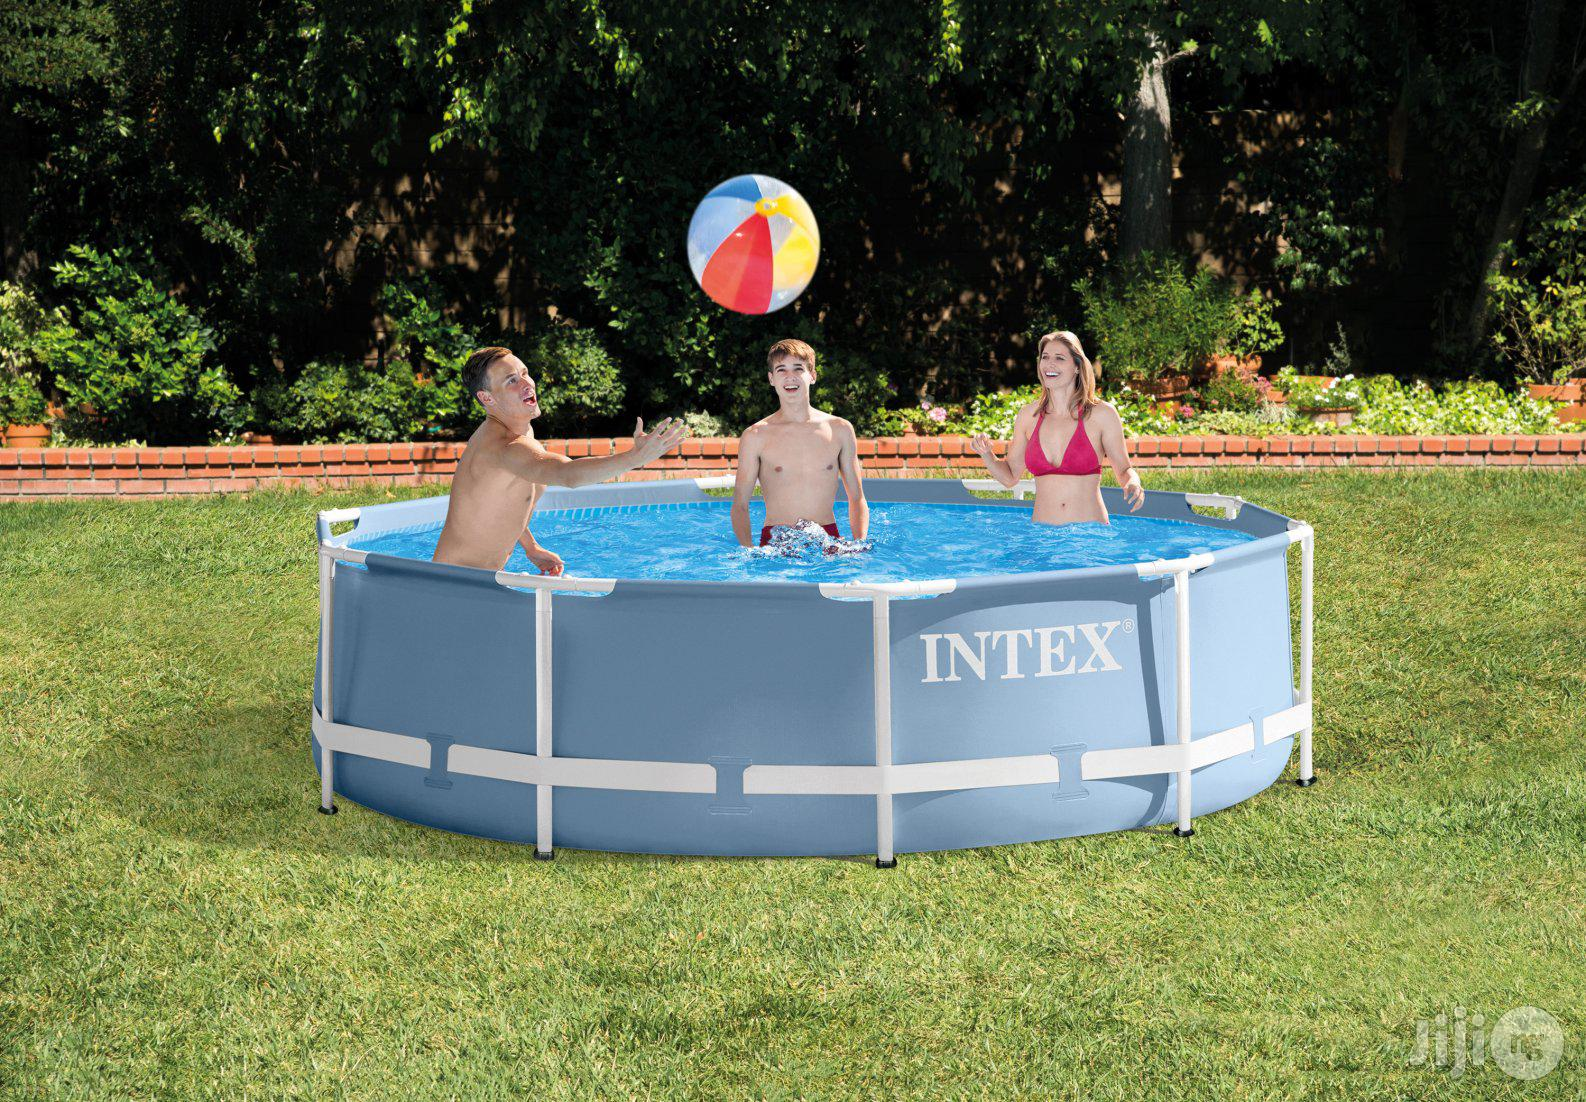 10 Ft By 3 Ft Prism Frame Swimming Pool INTEX